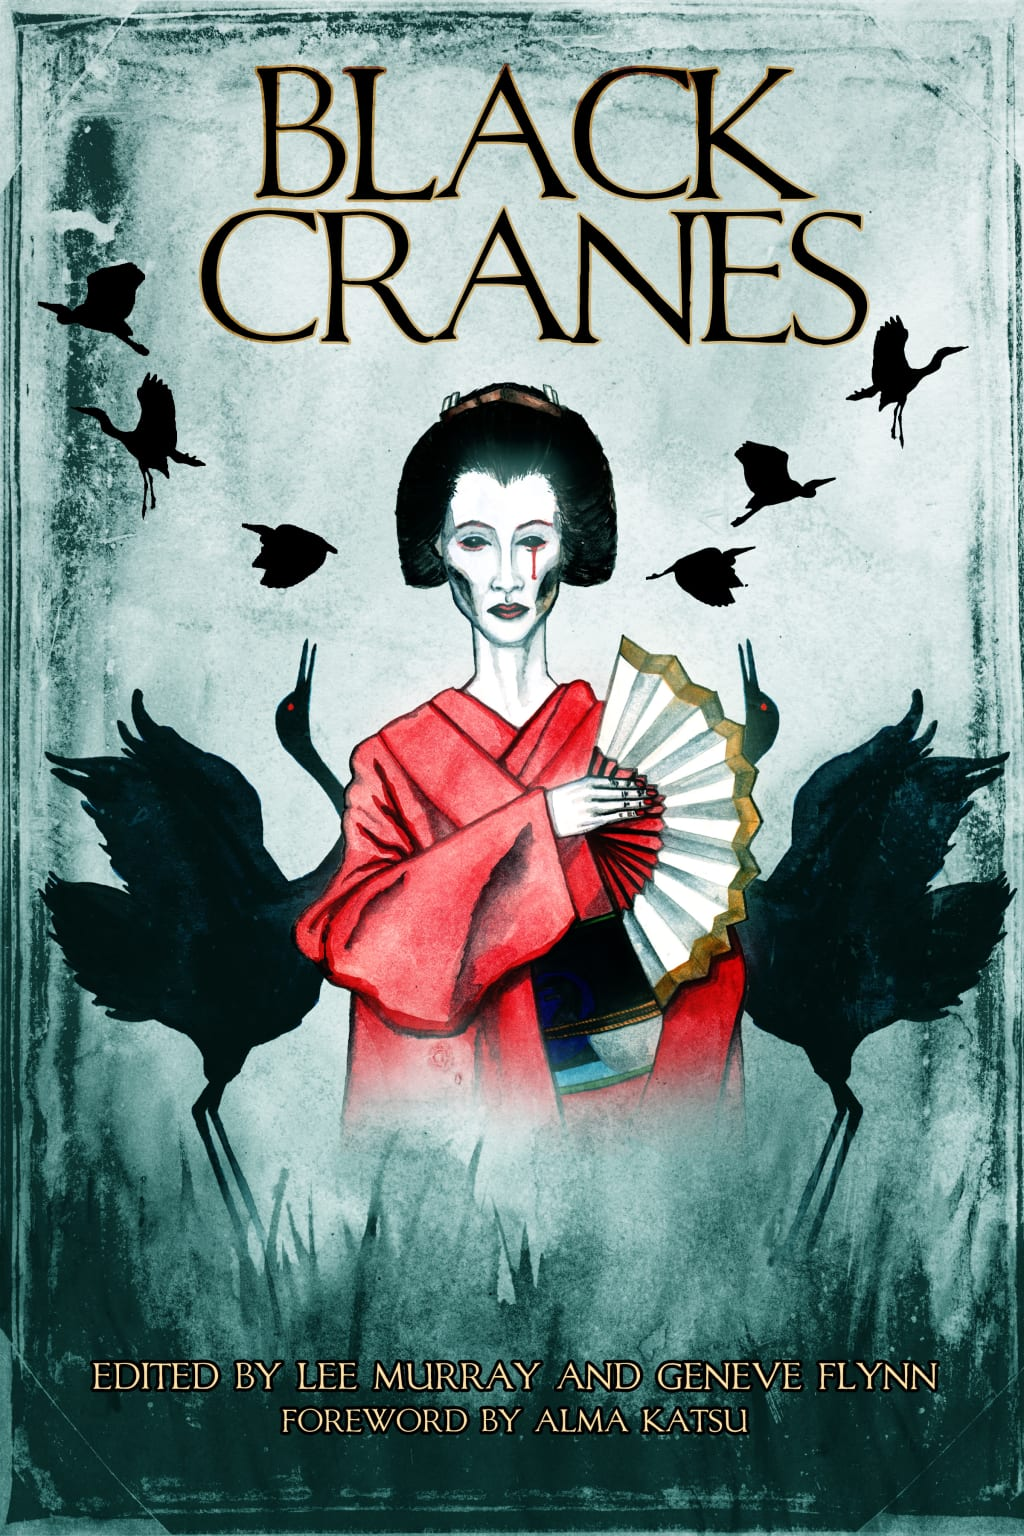 Reed Alexander's Horror Review of 'Black Cranes: Tales of Unquiet Women' 2020, Edited by Lee Murray and Geneve Flynn